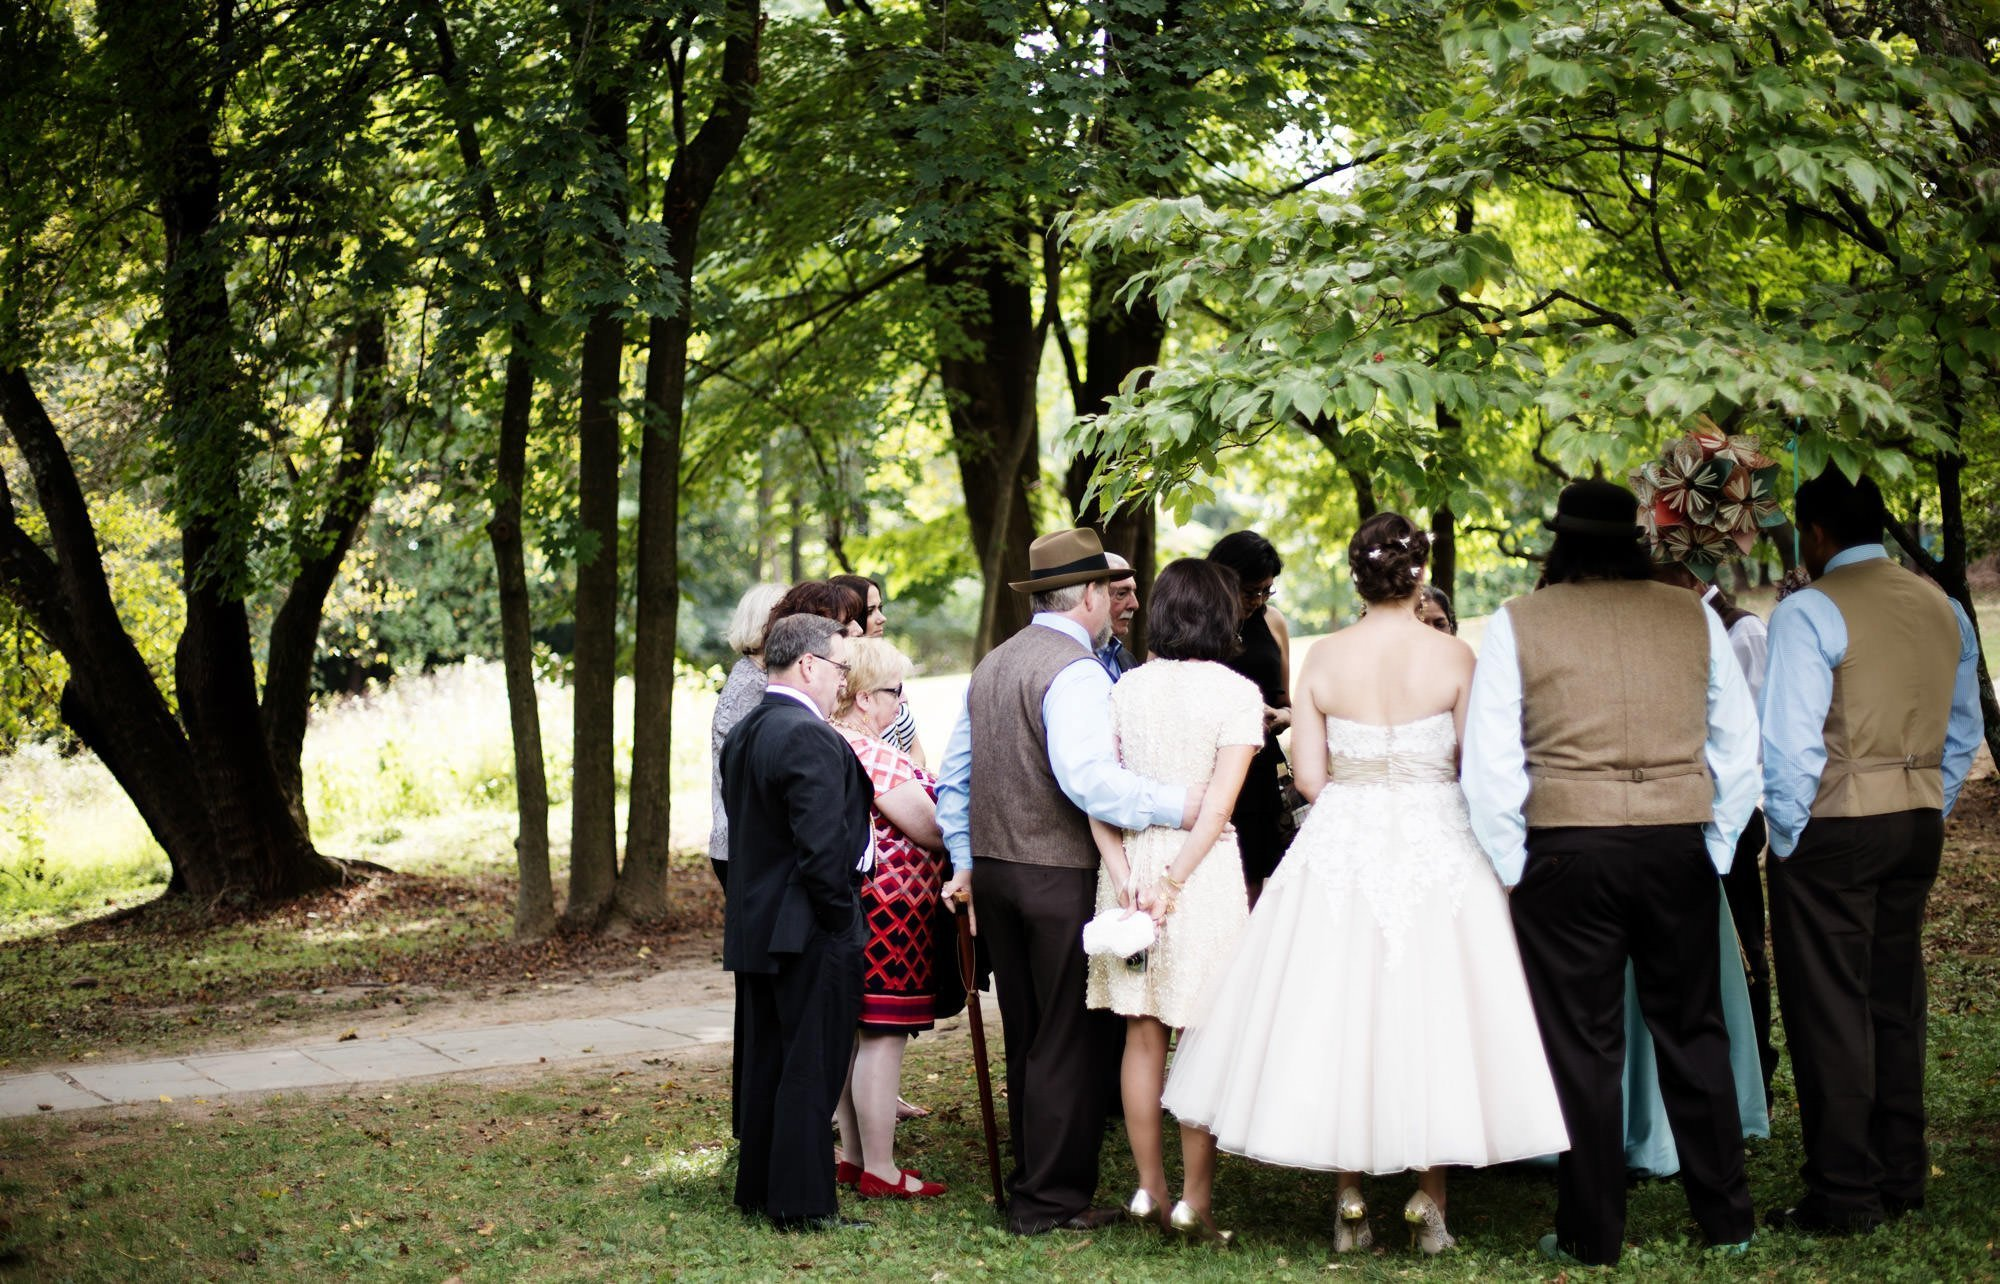 The couple participates in a private ceremony on their vWoodend Sanctuary and Mansion Wedding day.